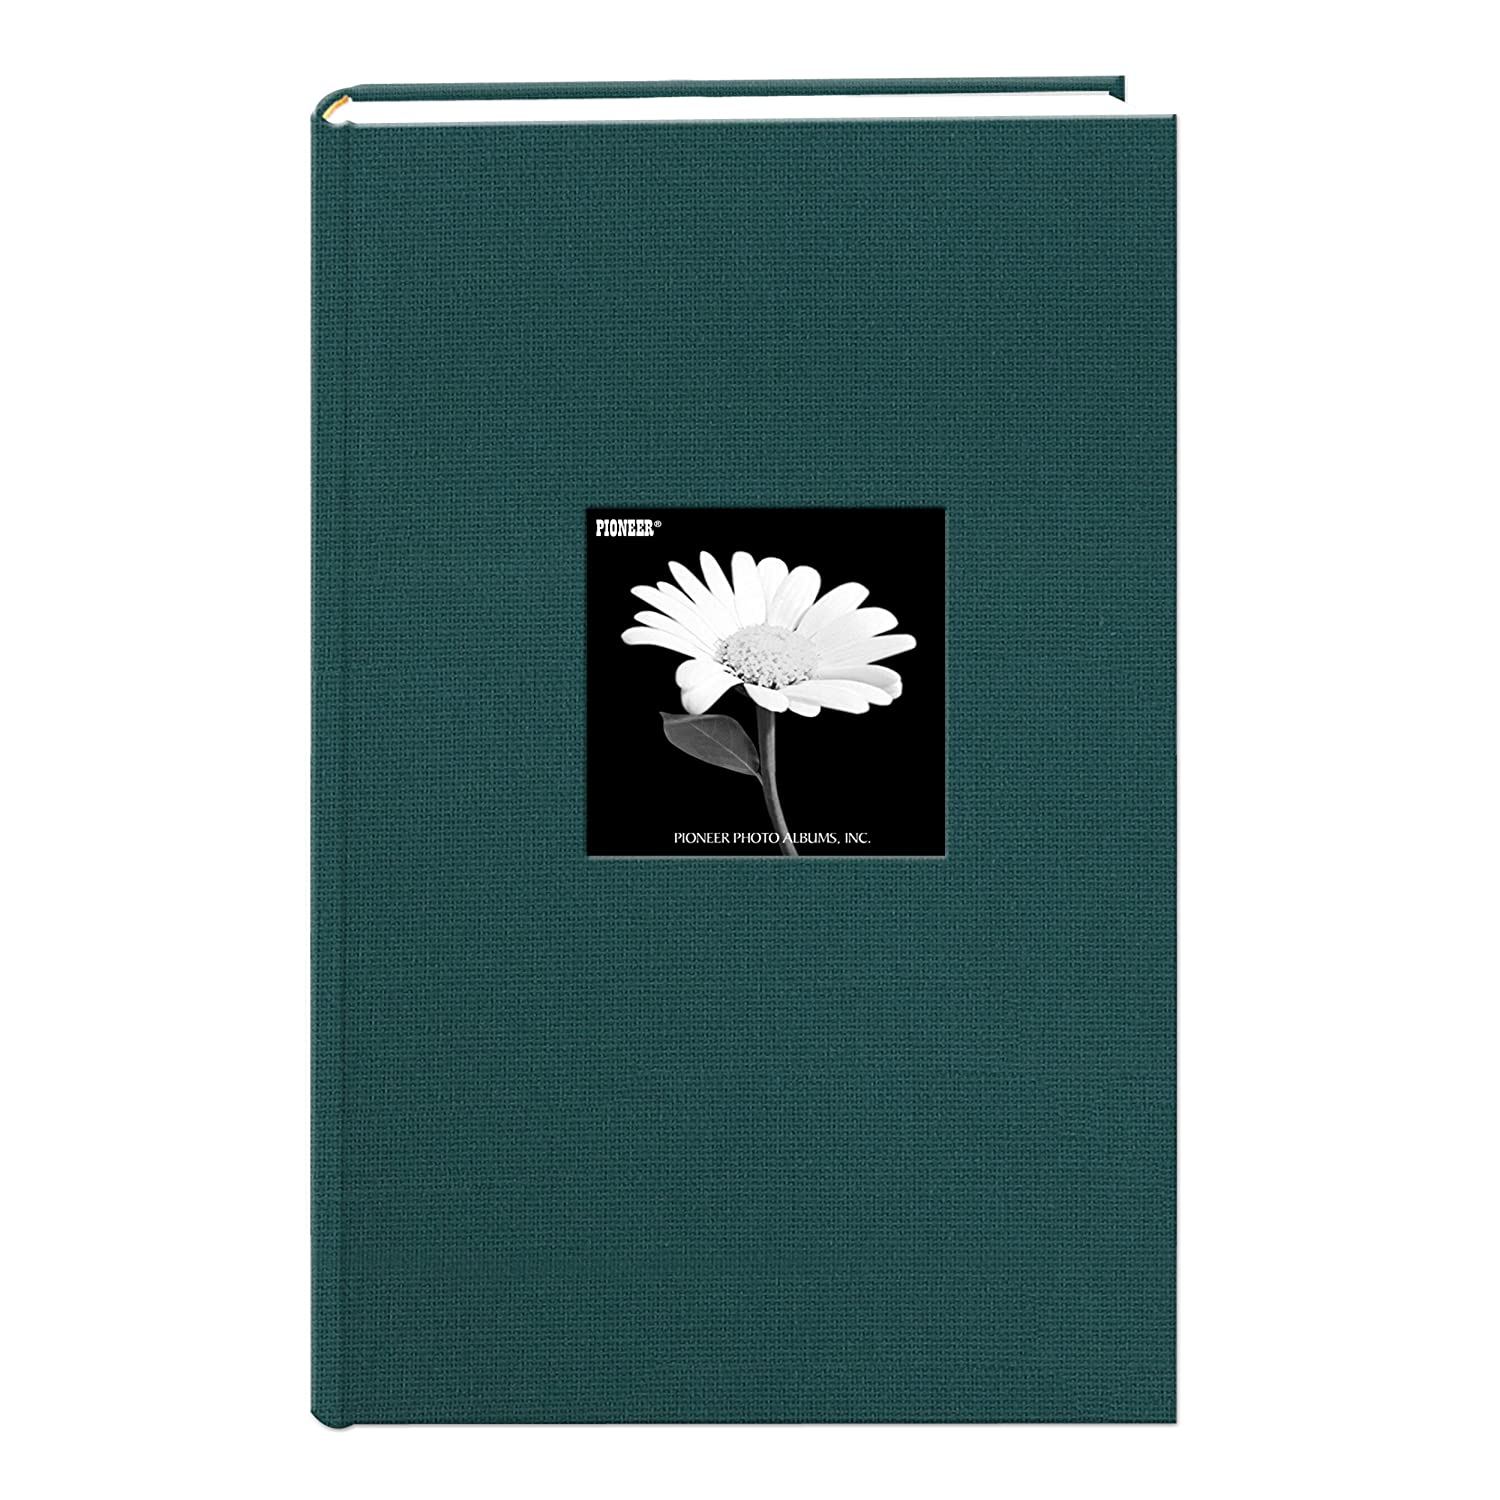 Fabric Frame Cover Photo Album 300 Pockets Hold 4x6 Photos, Majestic Teal Pioneer Photo Albums DA-300CBFNMT